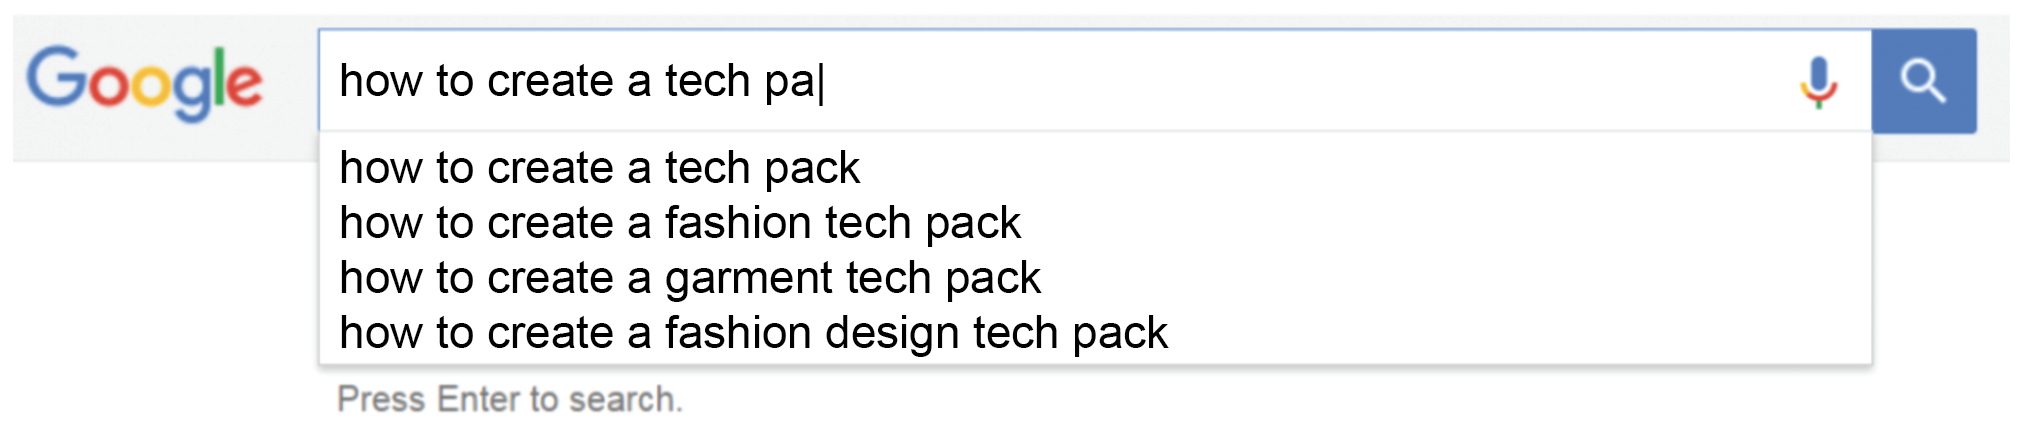 """c7e0ecdb5222 You stare at the google search bar wondering what to type in to get  started. """"How to create a fashion tech pack"""" gives you some results (some  of them are ..."""